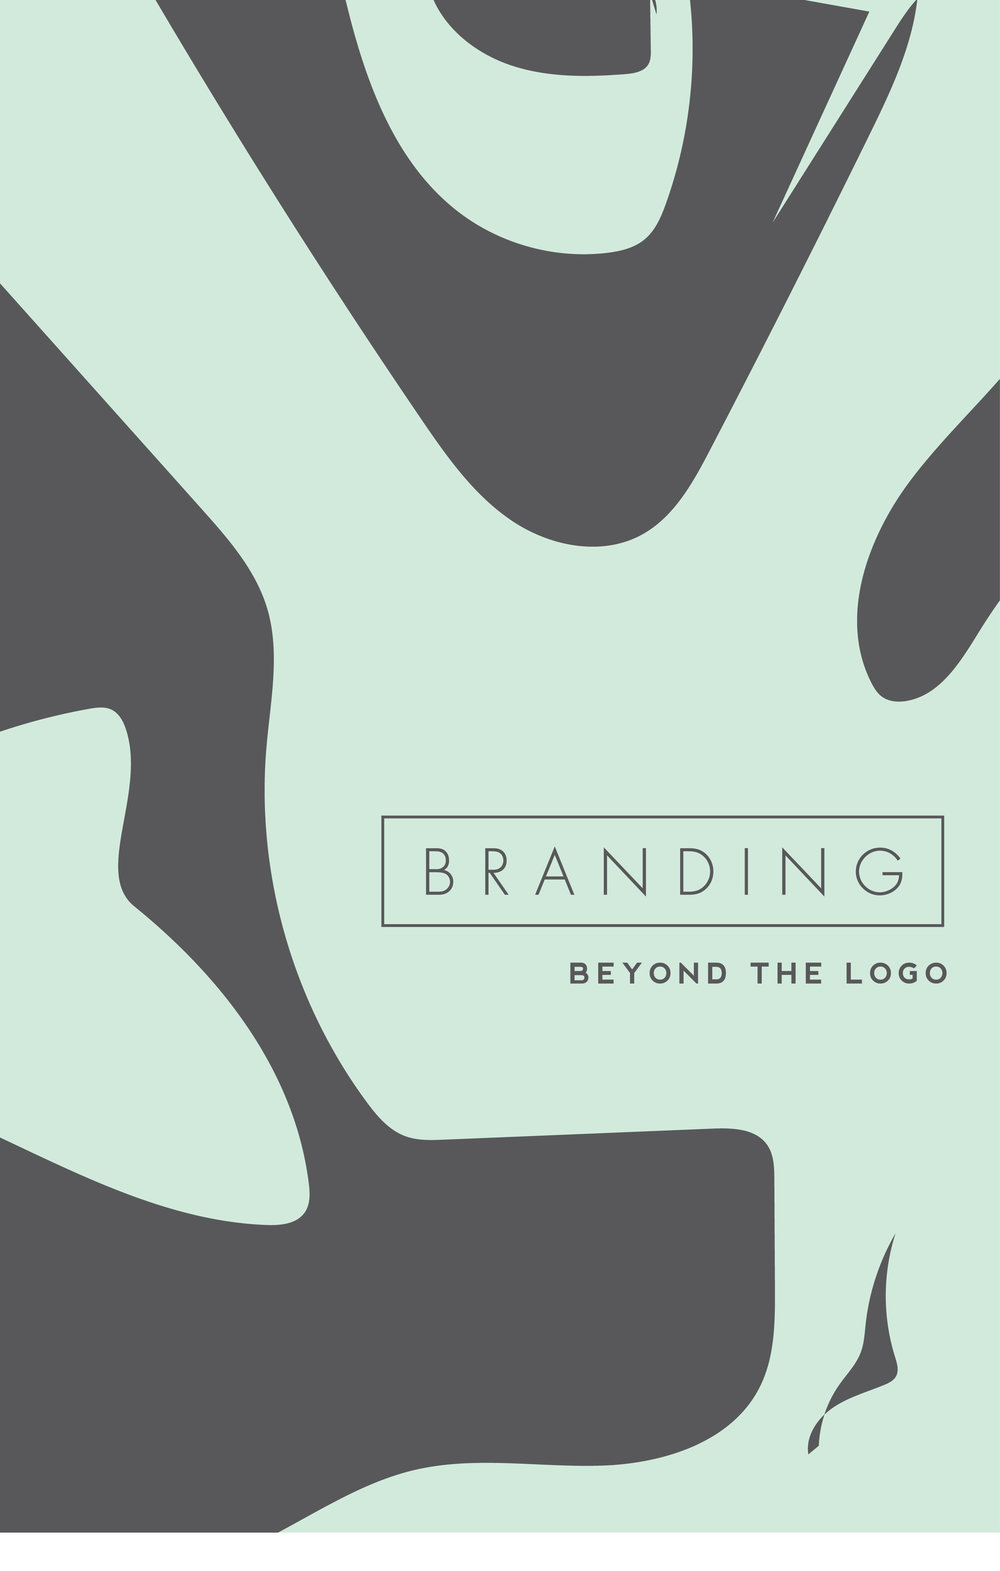 Branding-BEYOND-THE-LOGO-June-mango-design-01.jpg